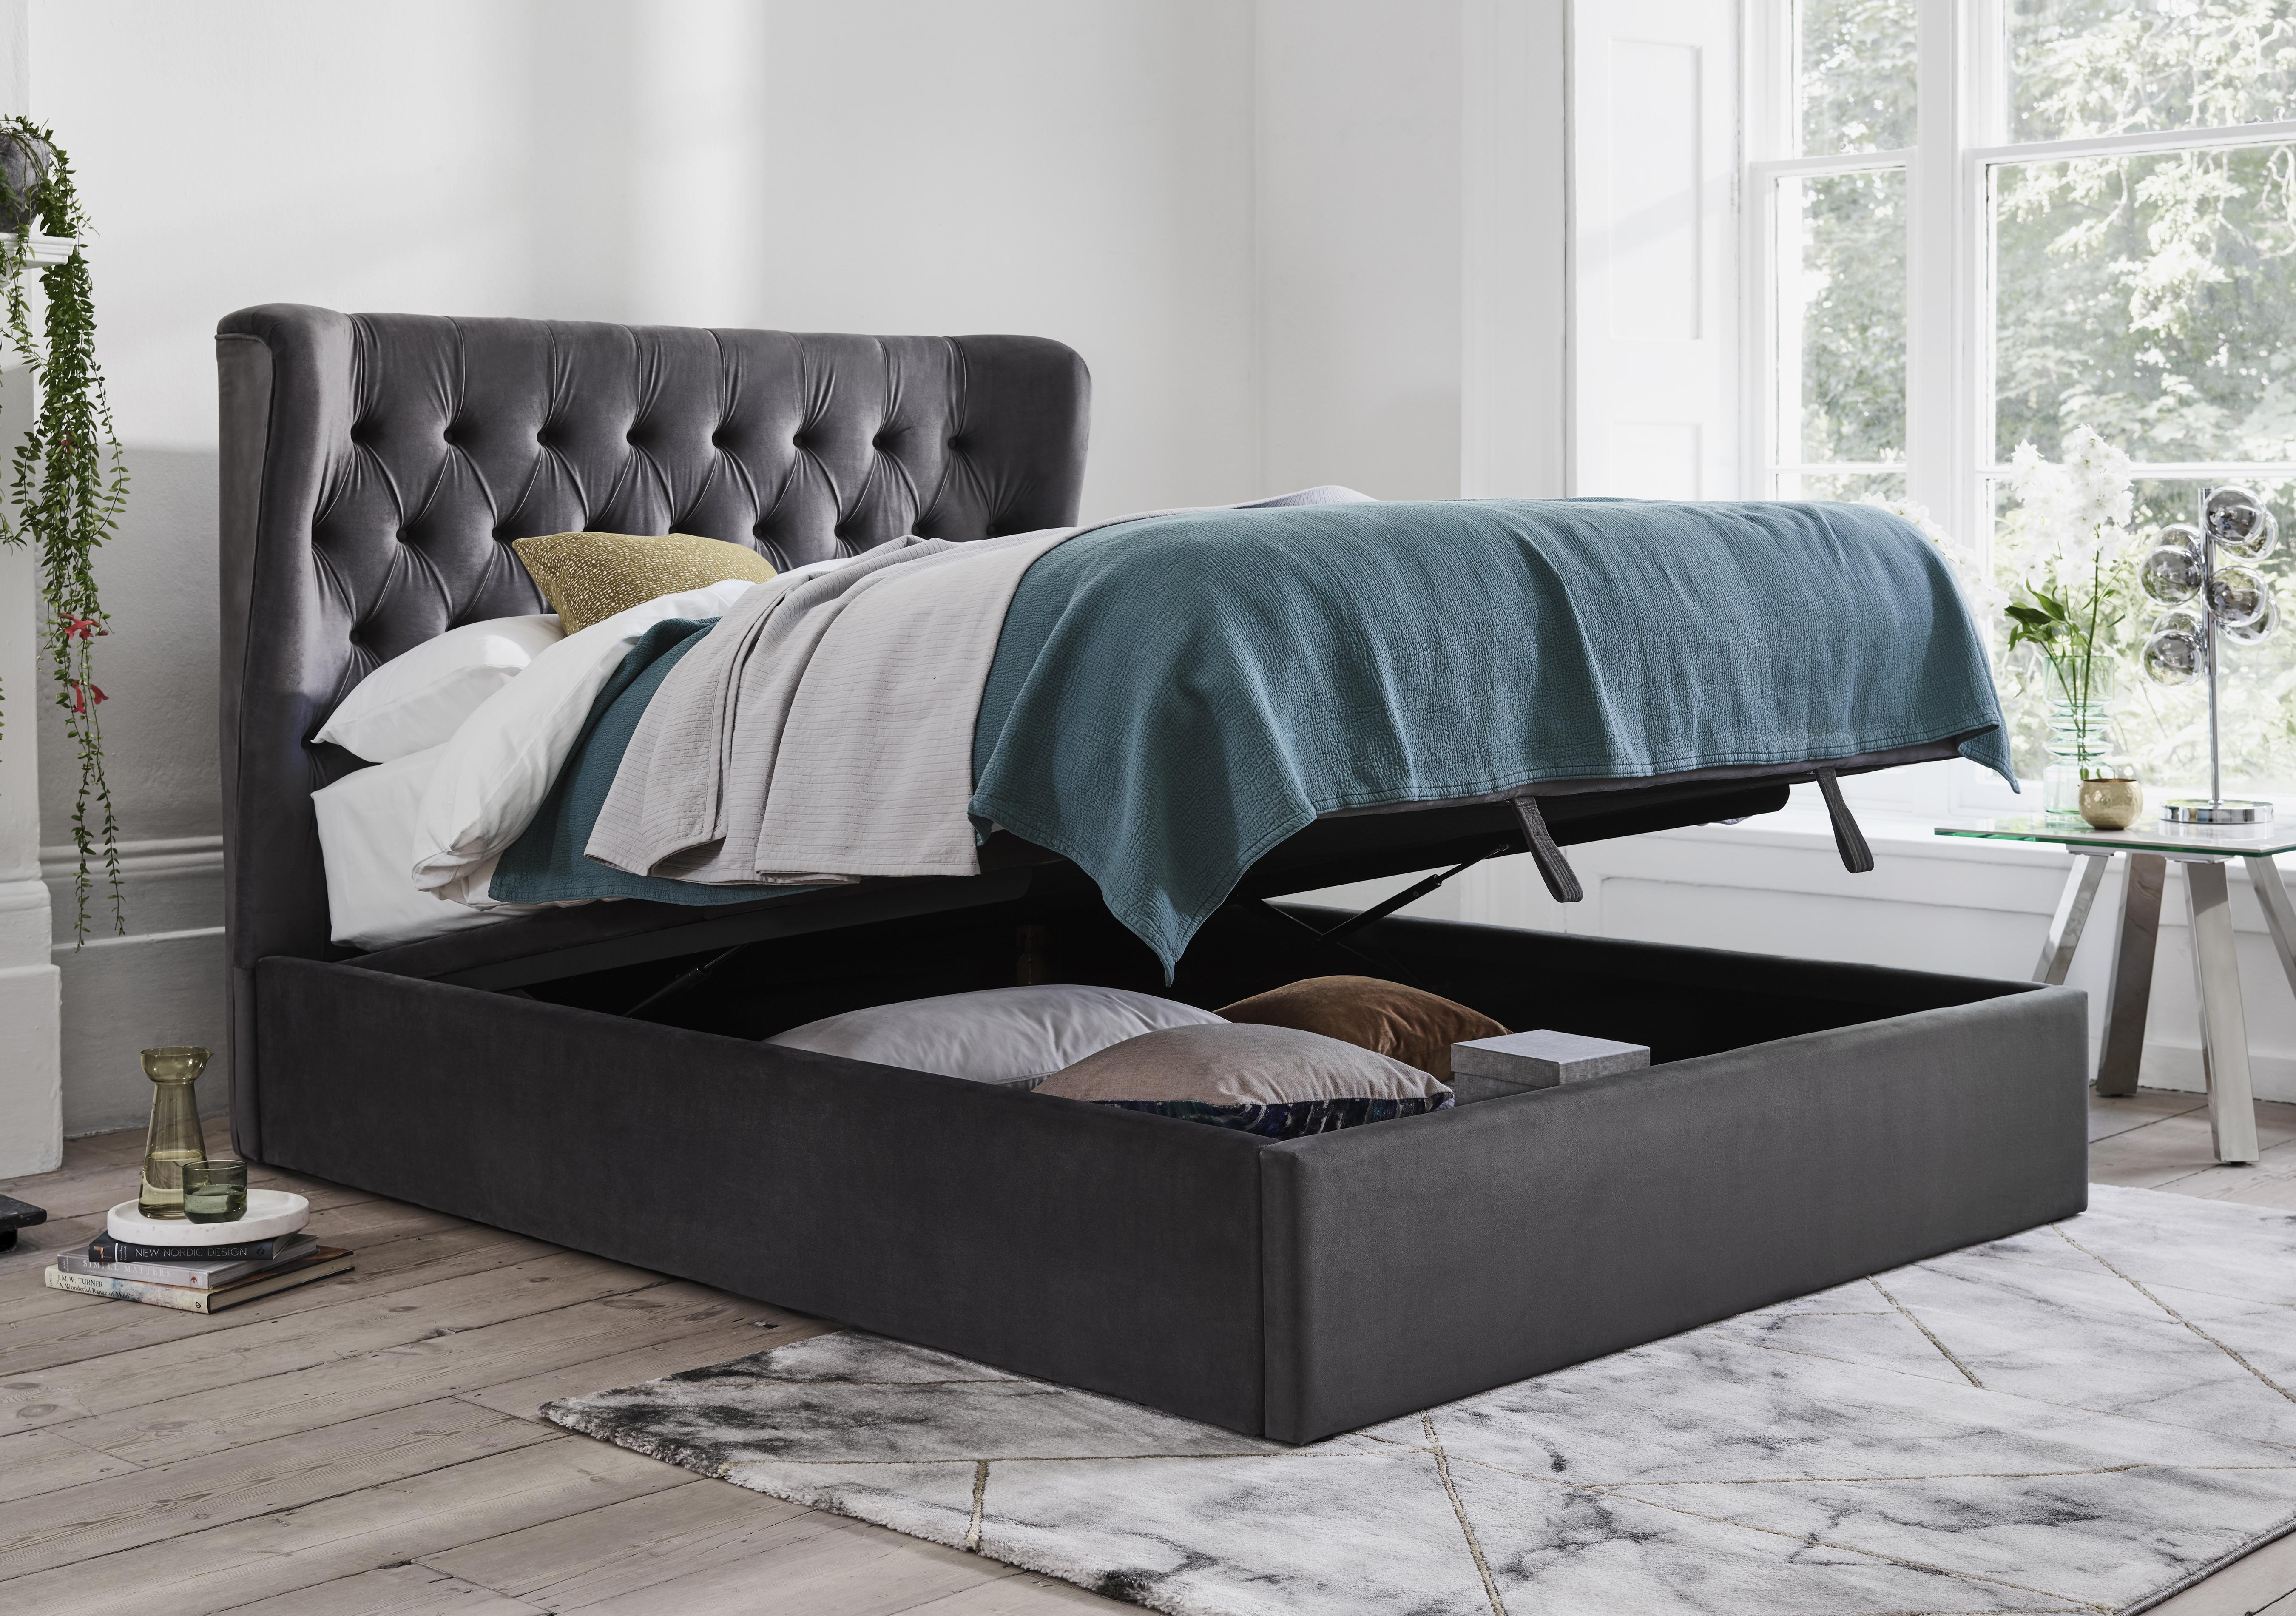 PRODZFRSP000000000038321_calypso_ottoman-bed-frame__lifestyle